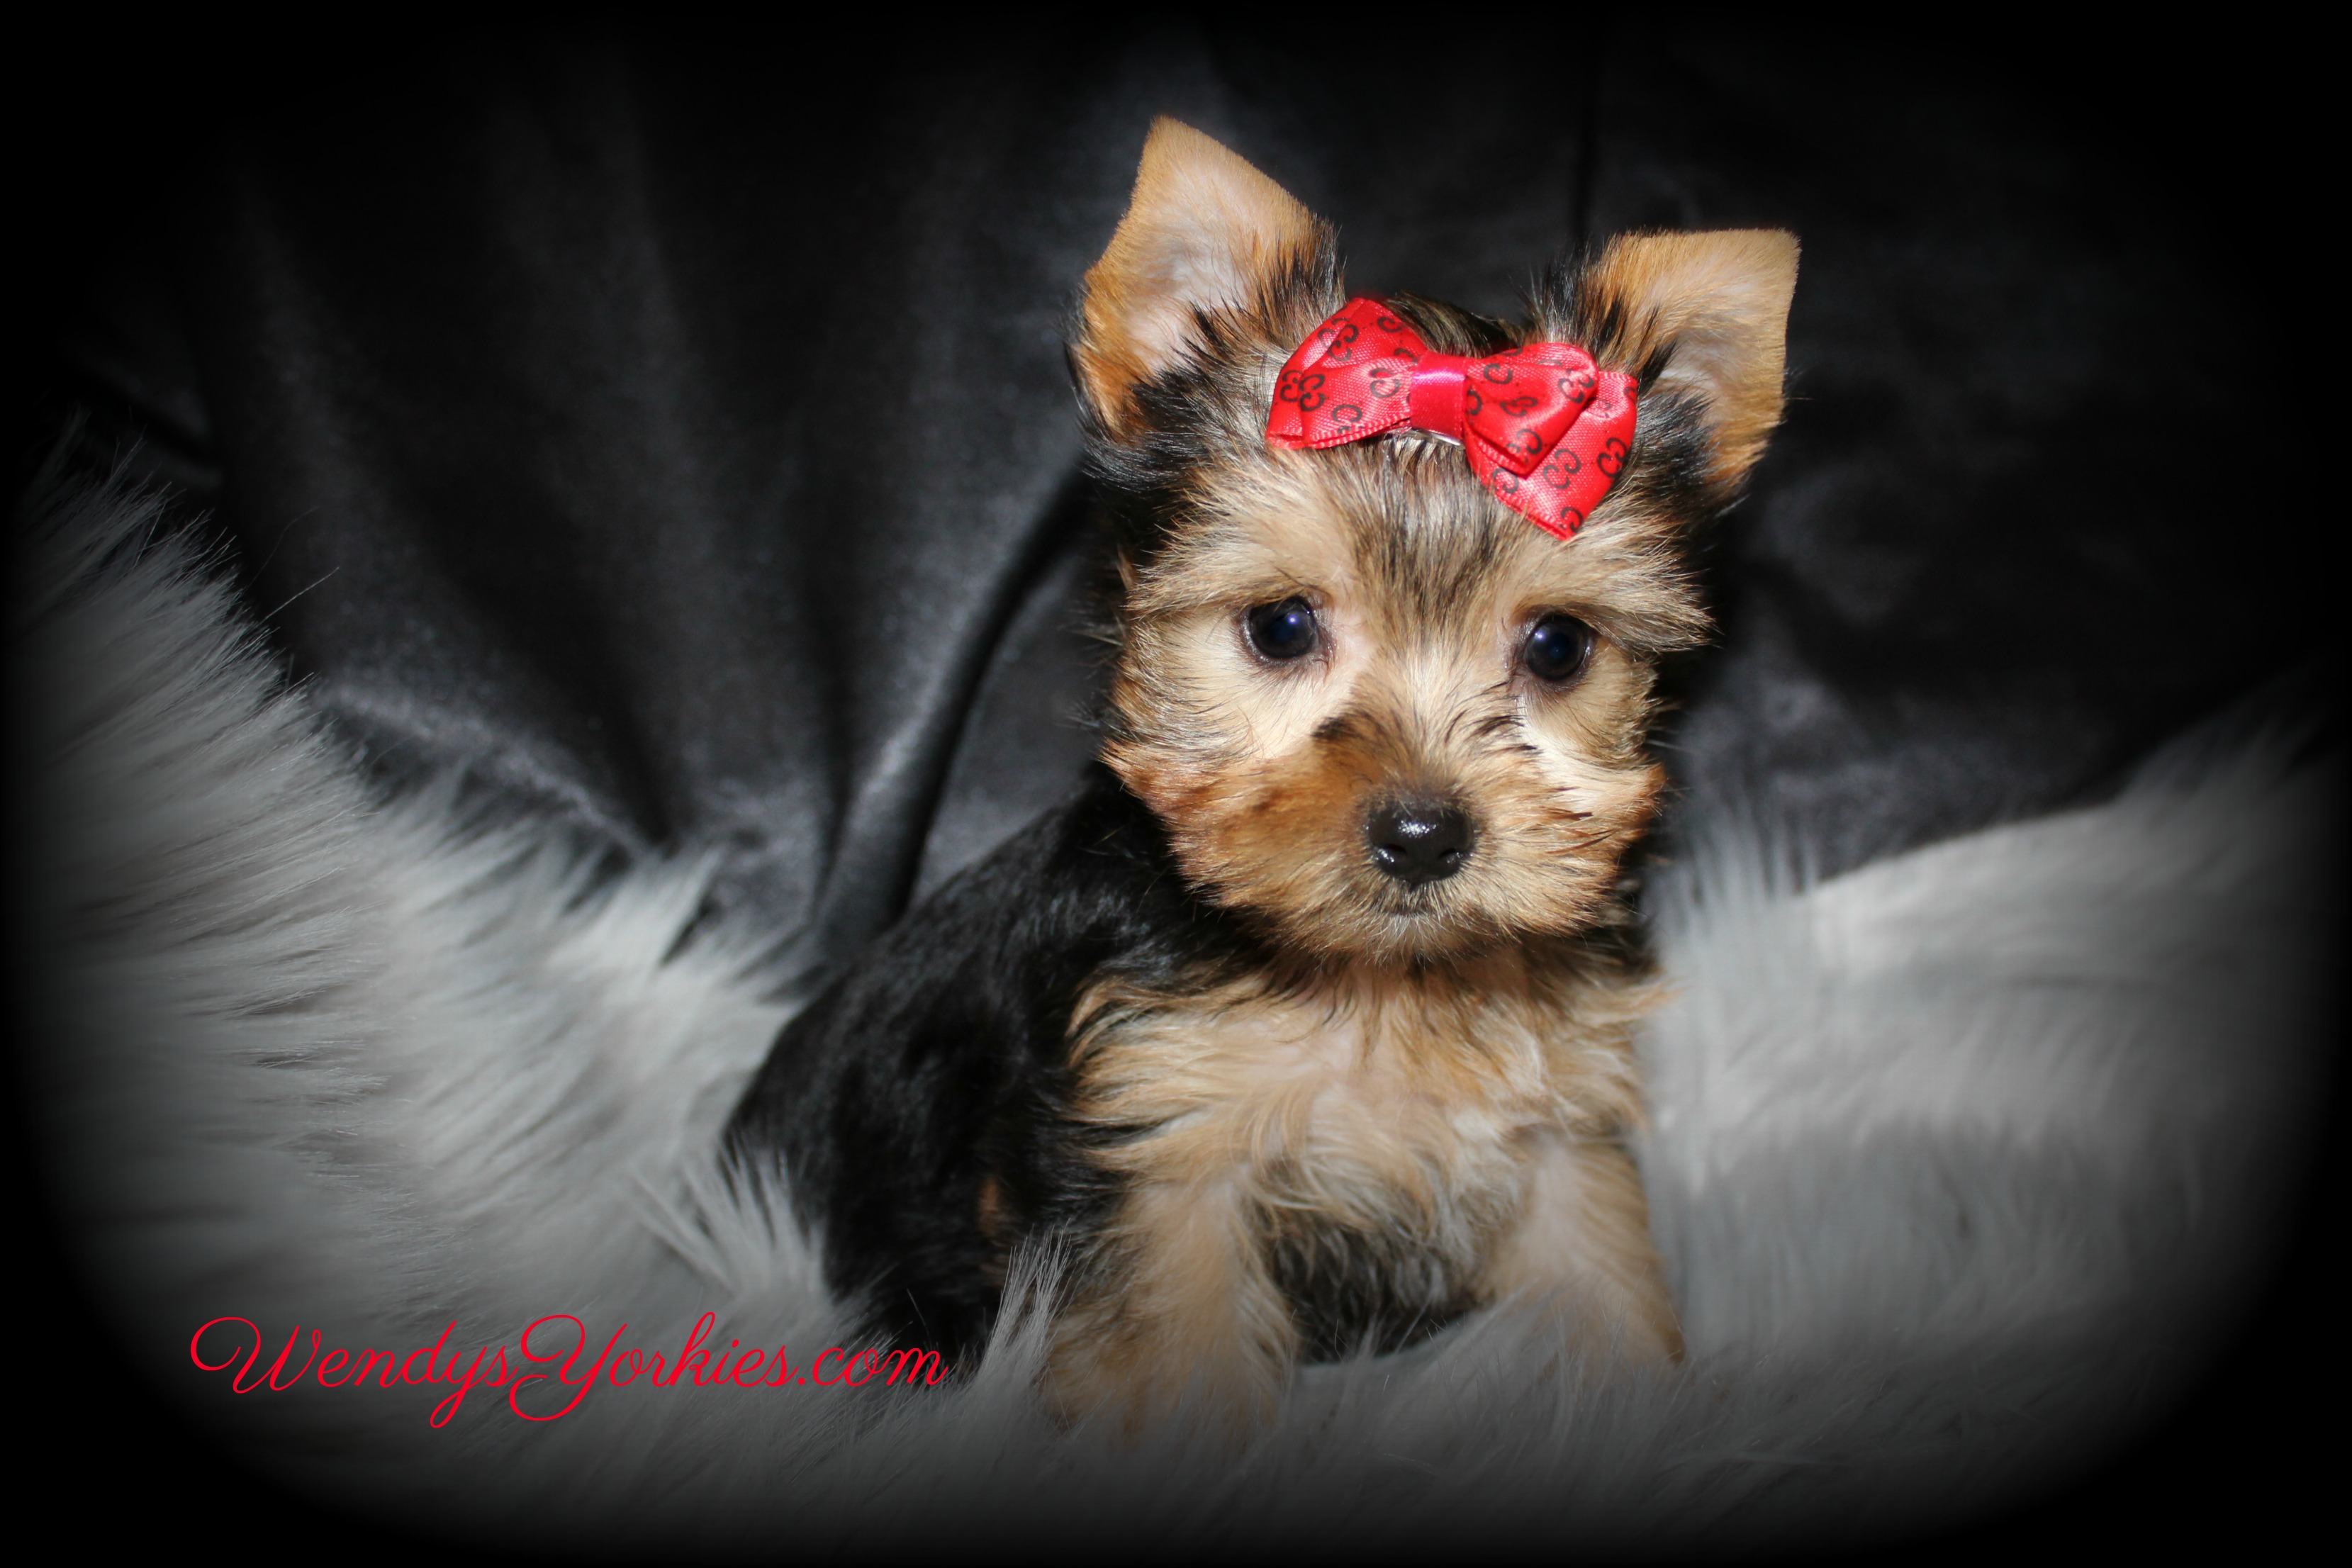 Teacup Male Yorkie puppy for sale in Texas, Cheyenne m1, WendysYorkies.com